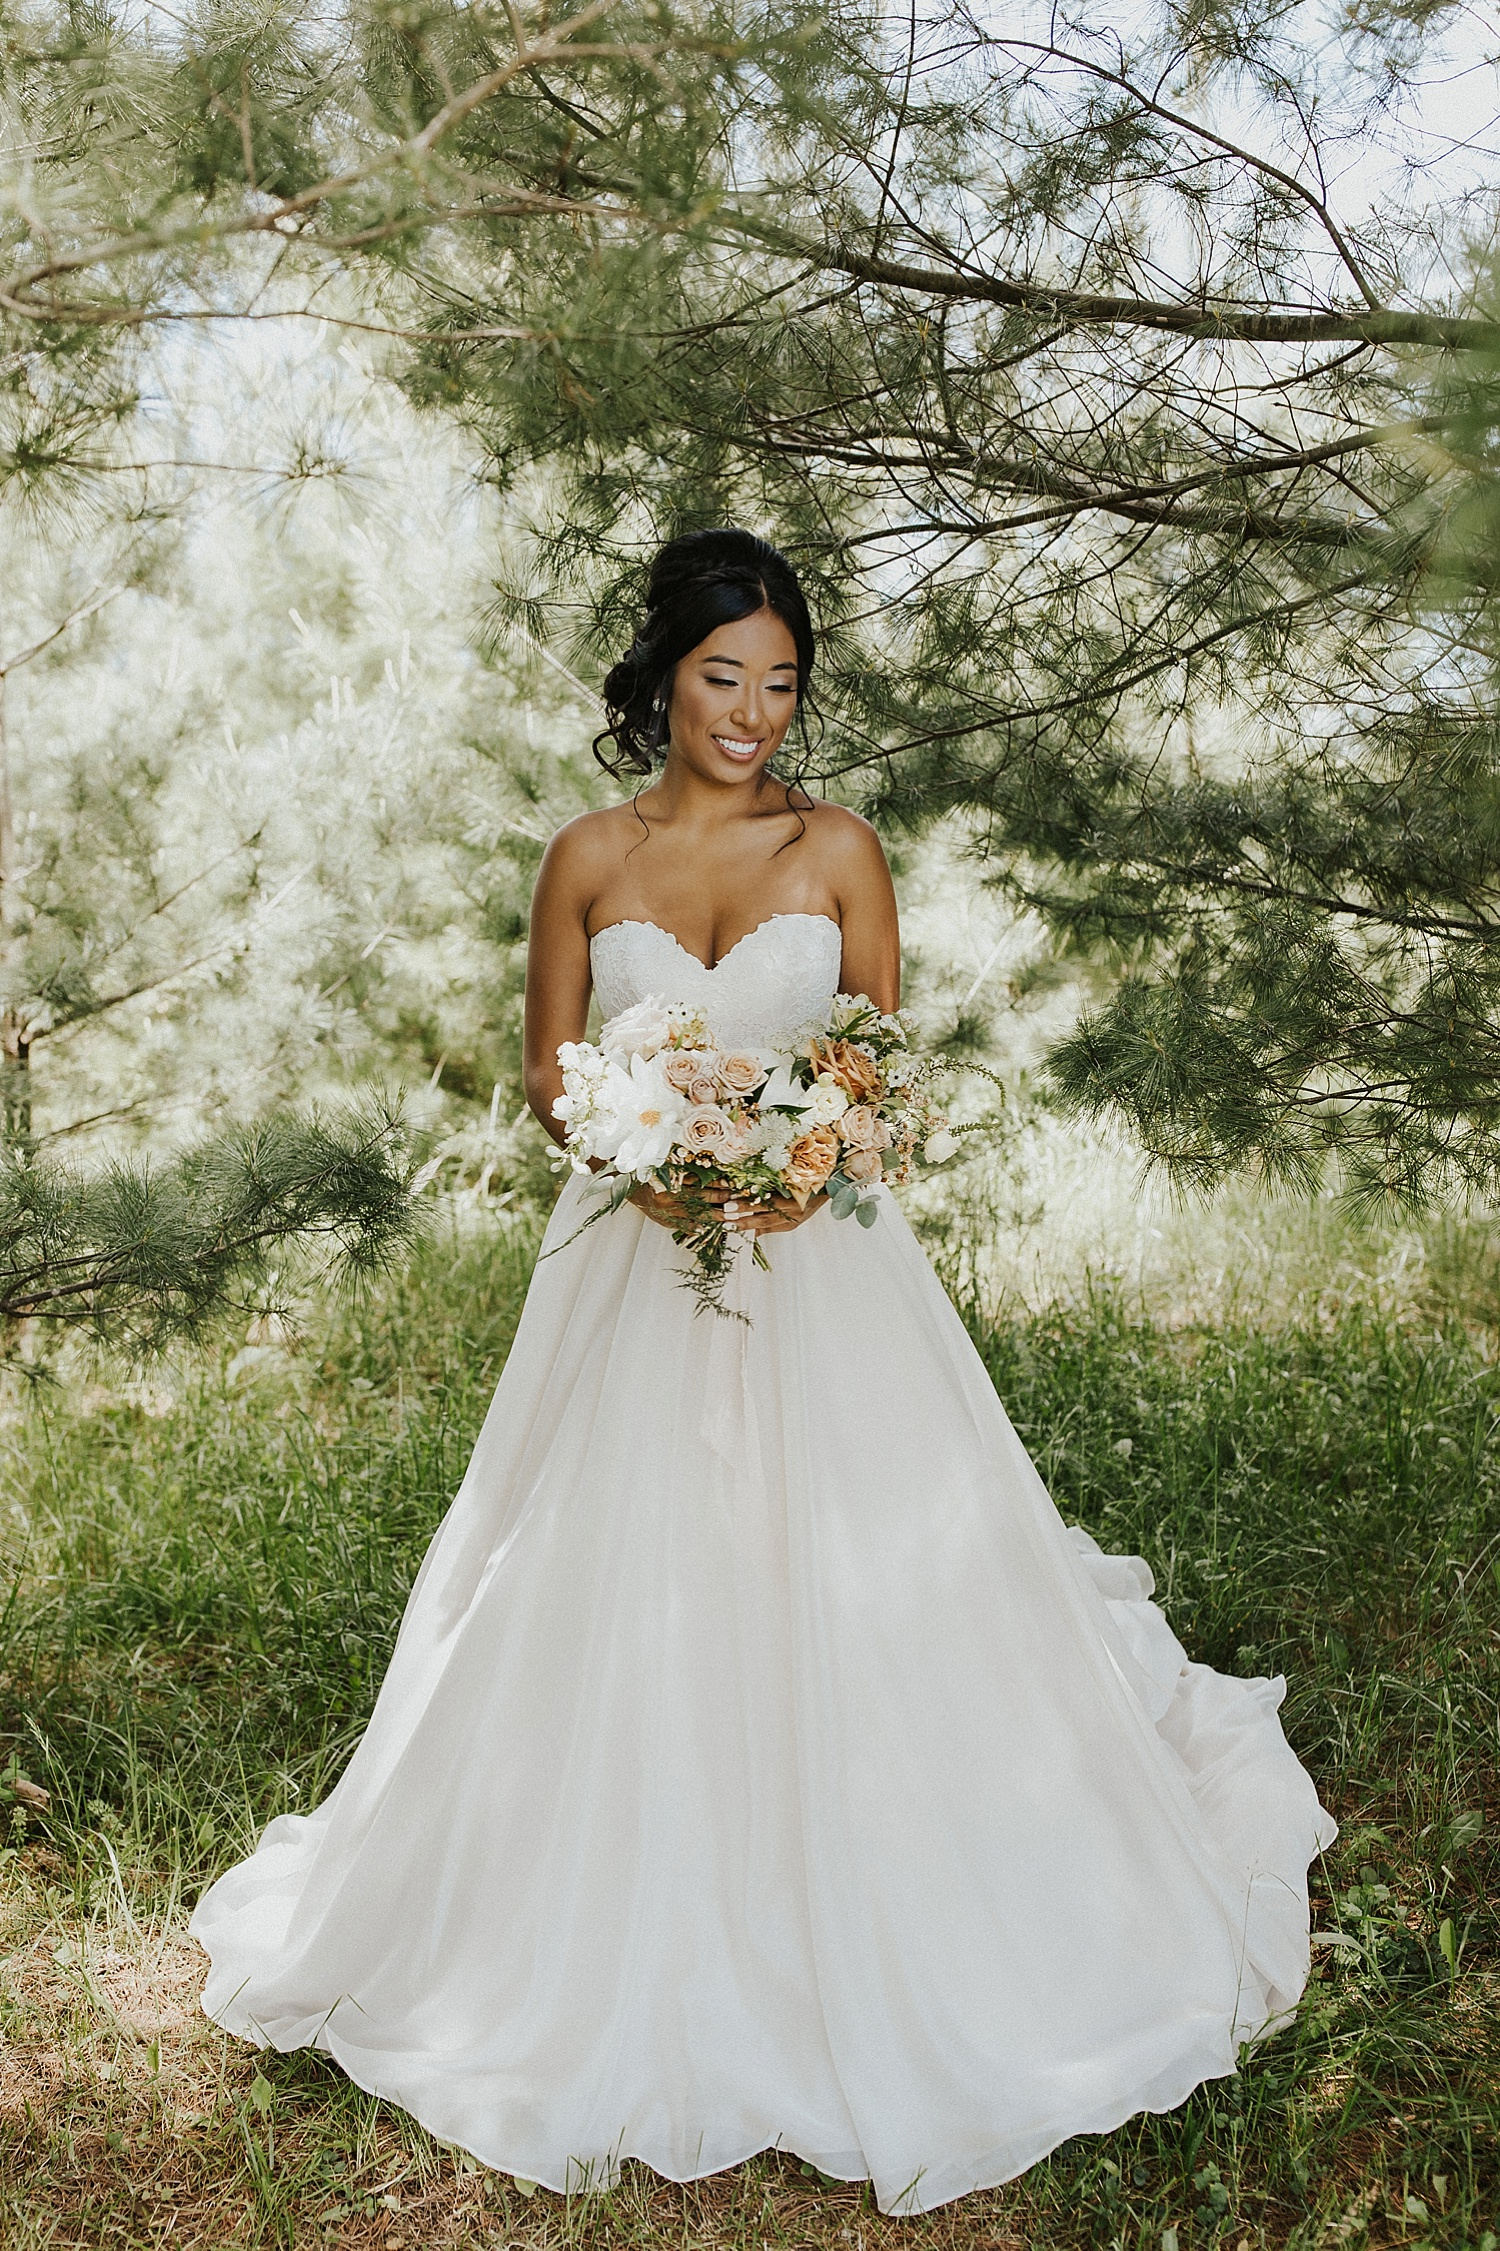 Bride standing among the trees, holding her bouquet